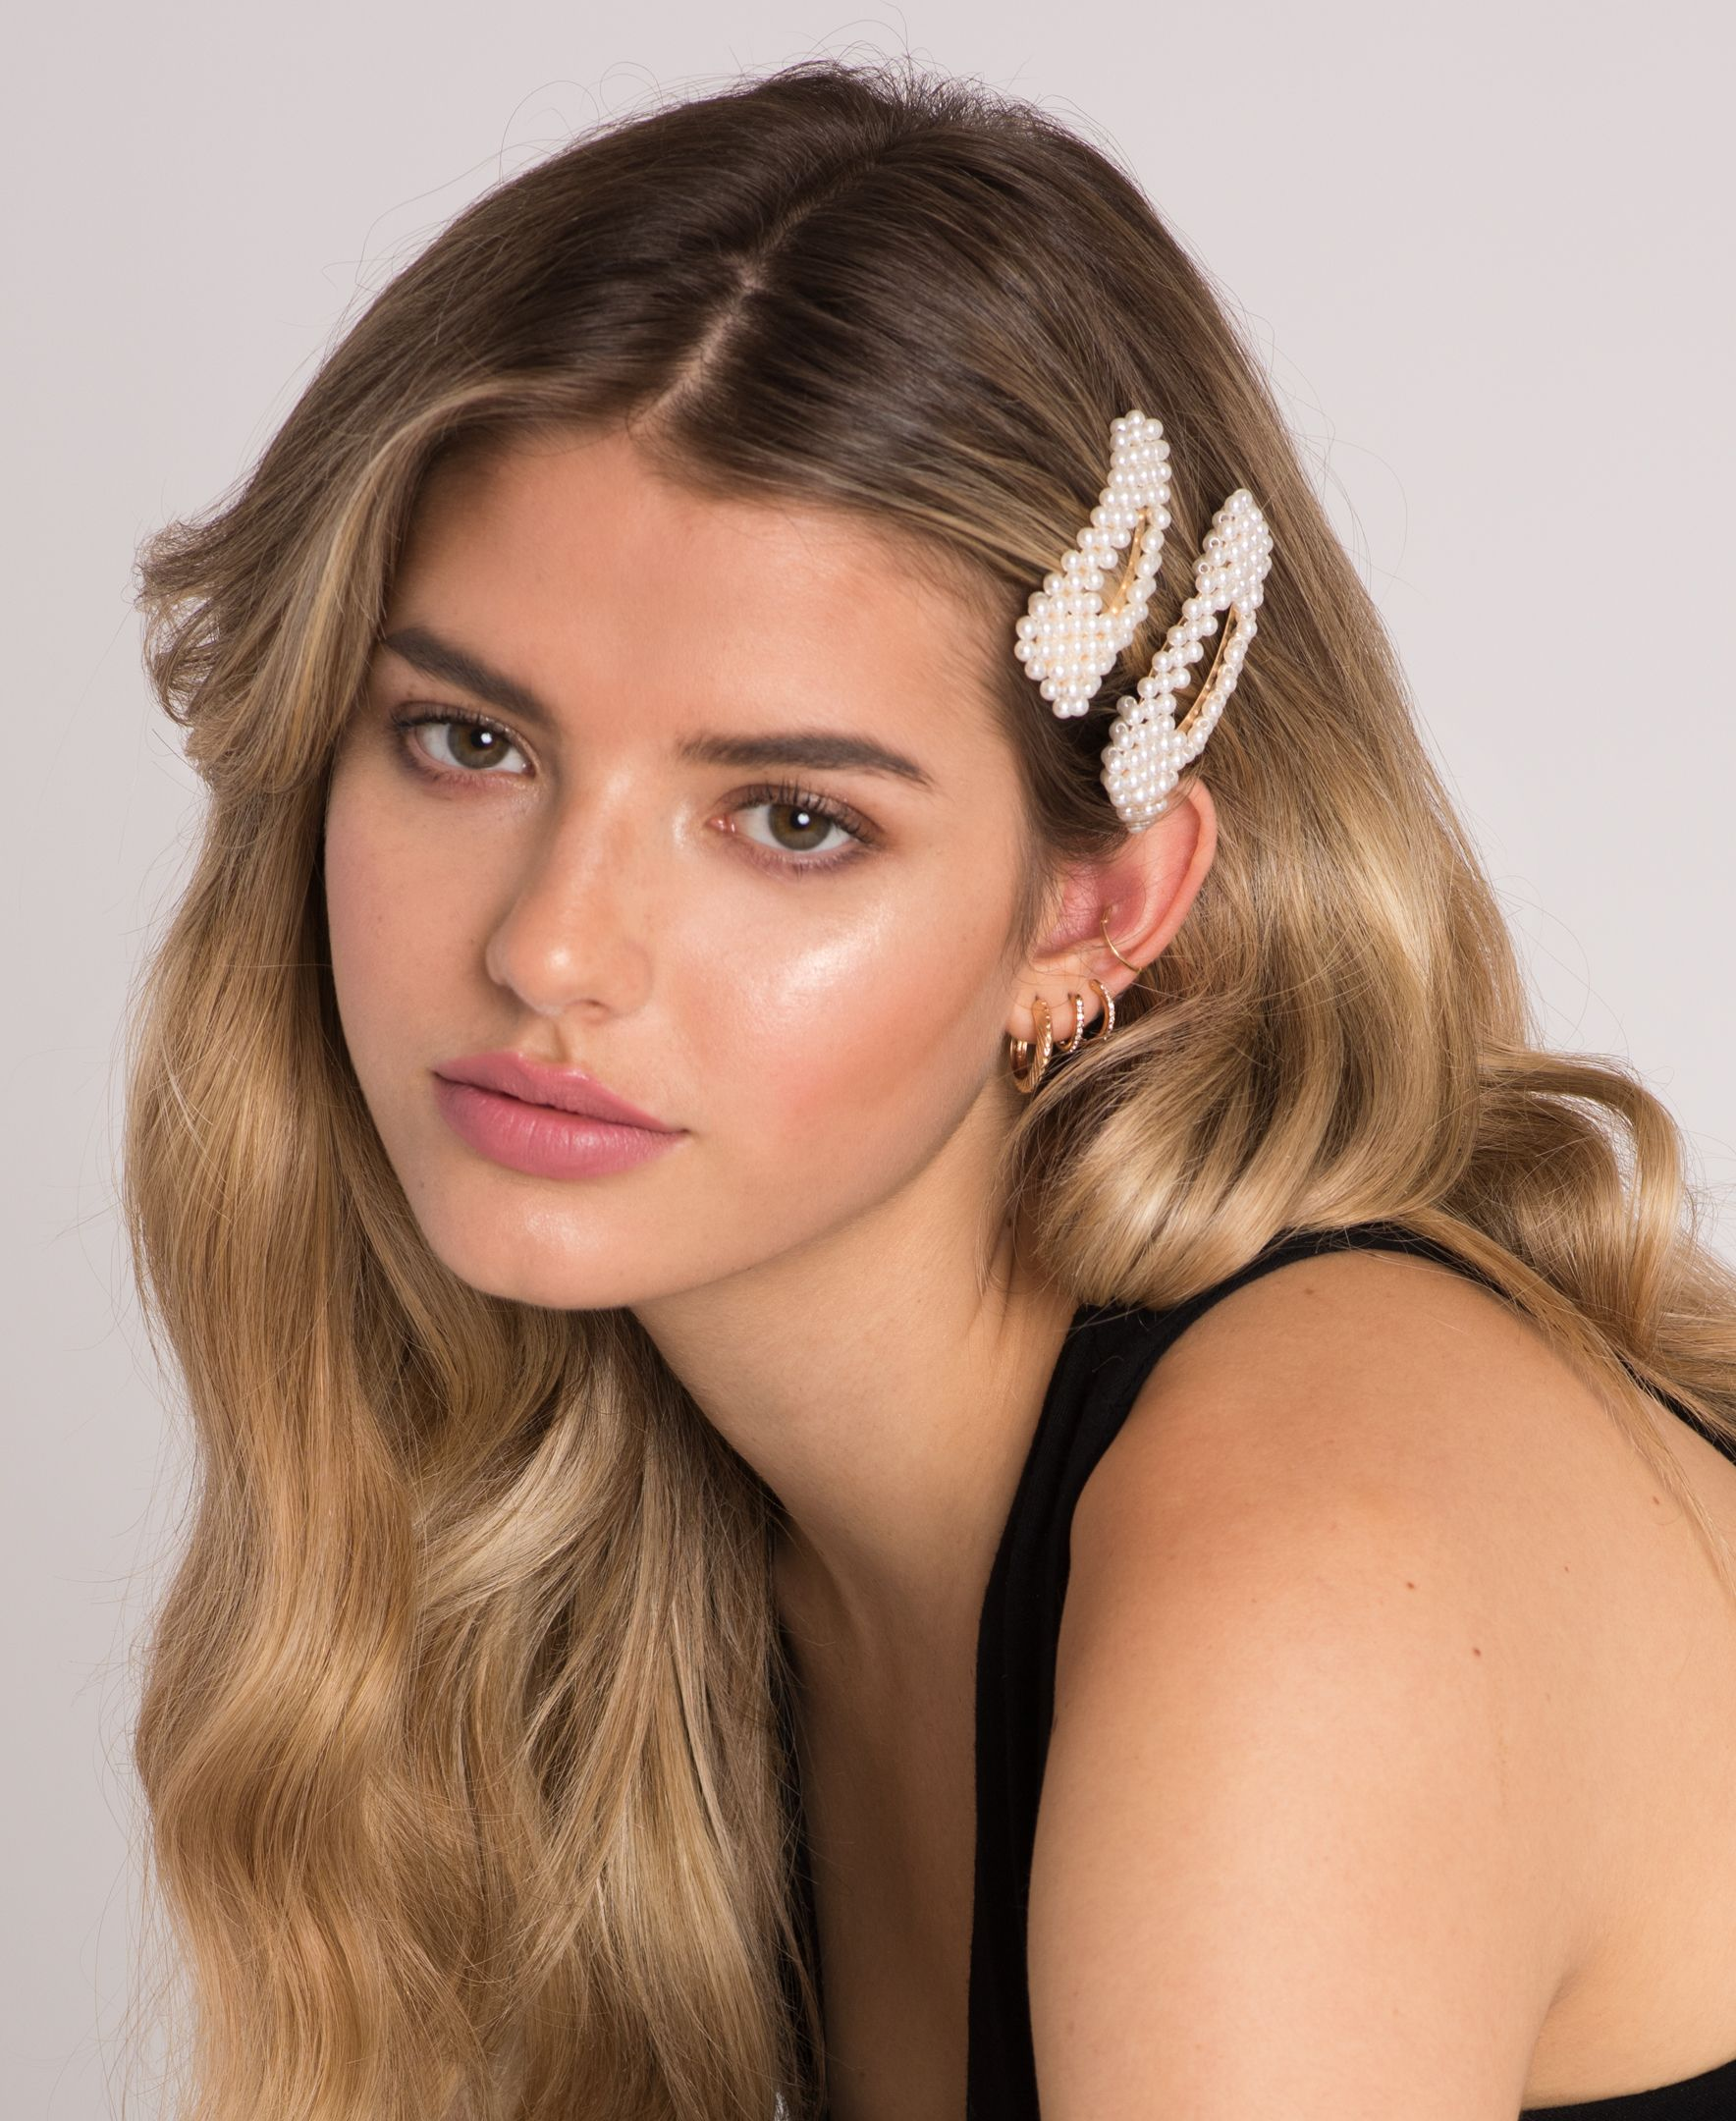 Stack Our Pearl Hair Clips With Cute Jewelry To Upgrade A Simple Look To Stylish Sohostyle In 2020 Beaded Hair Clips Luxury Hair Extensions Hair Accessories Pearl